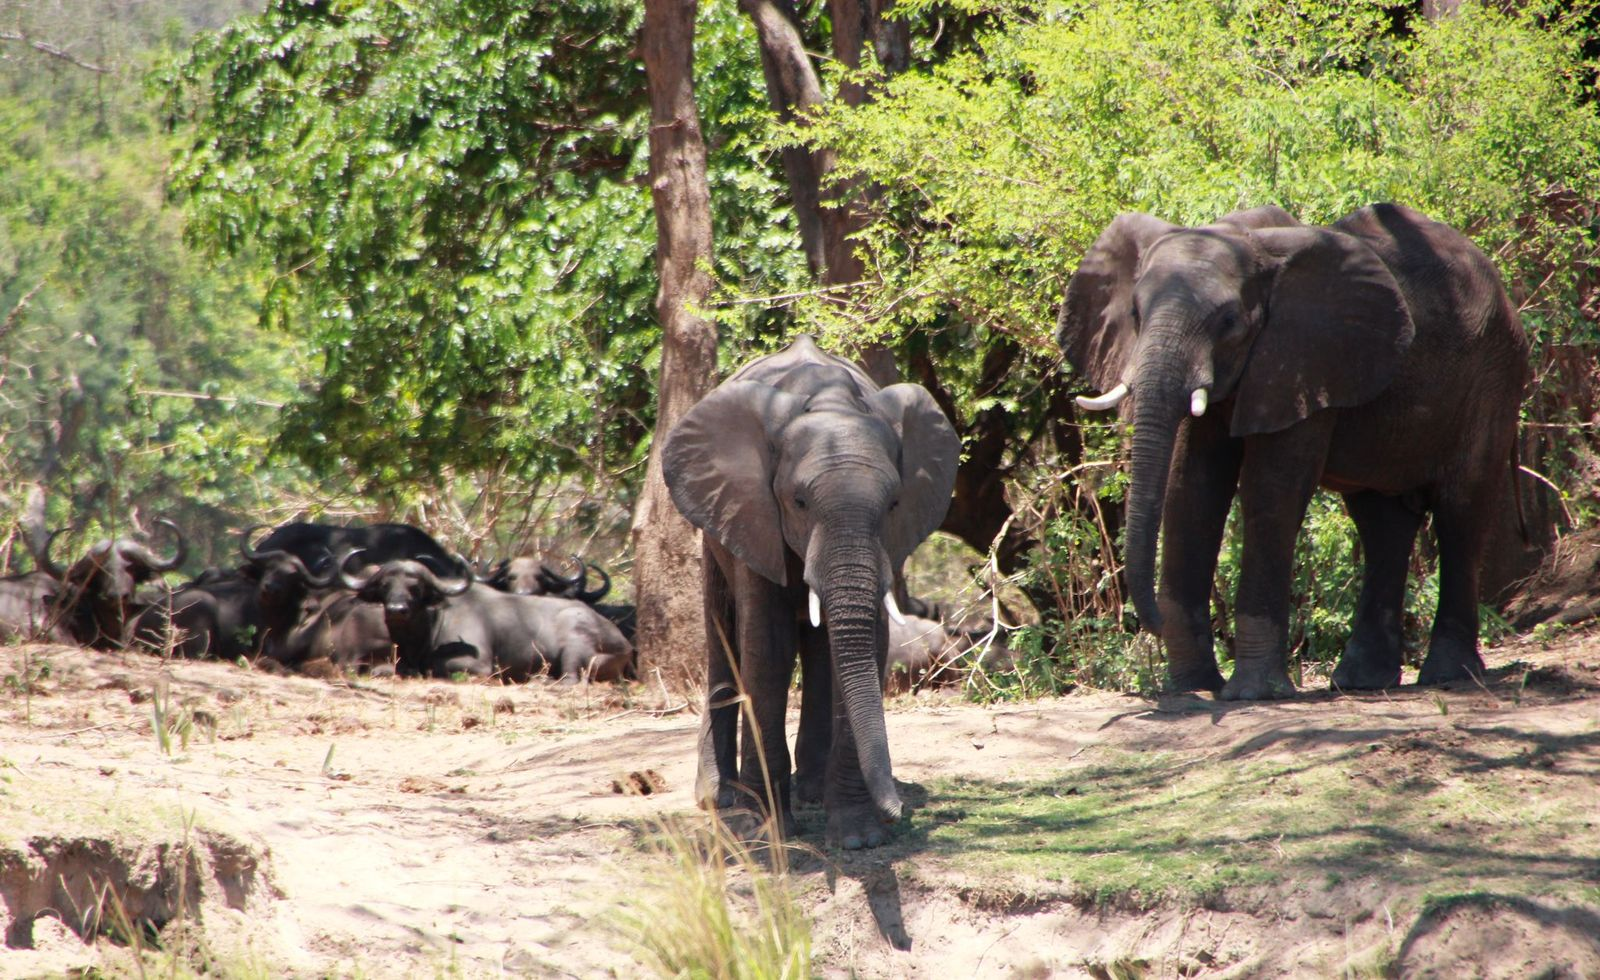 Our visit to the Lower Zambezi National Park by Vee Marffy June 2020